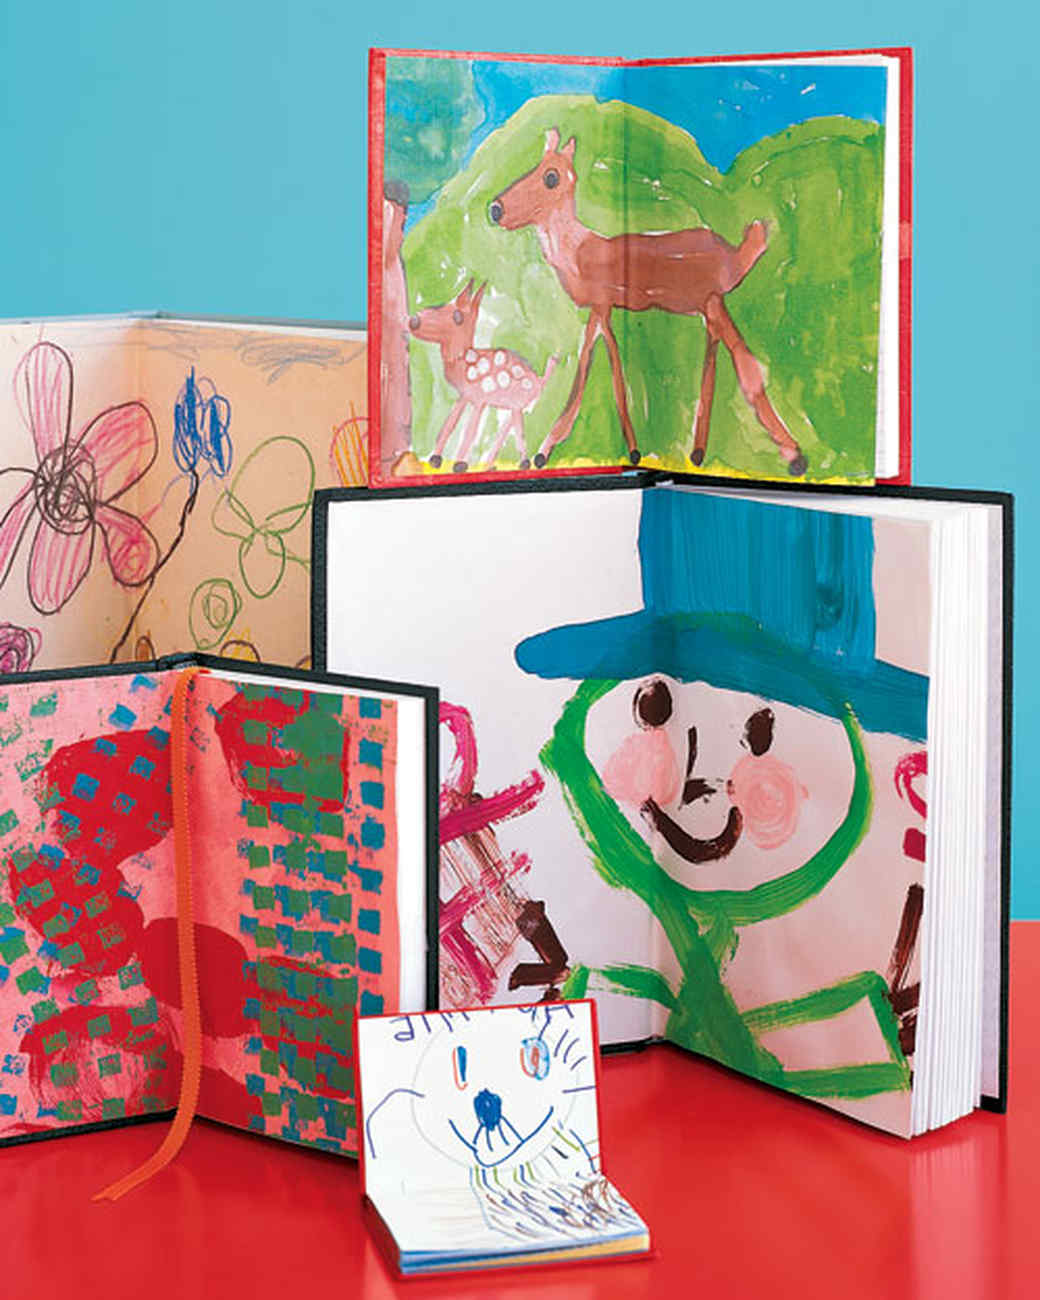 kids artwork inside the front and back covers of various arranged journals